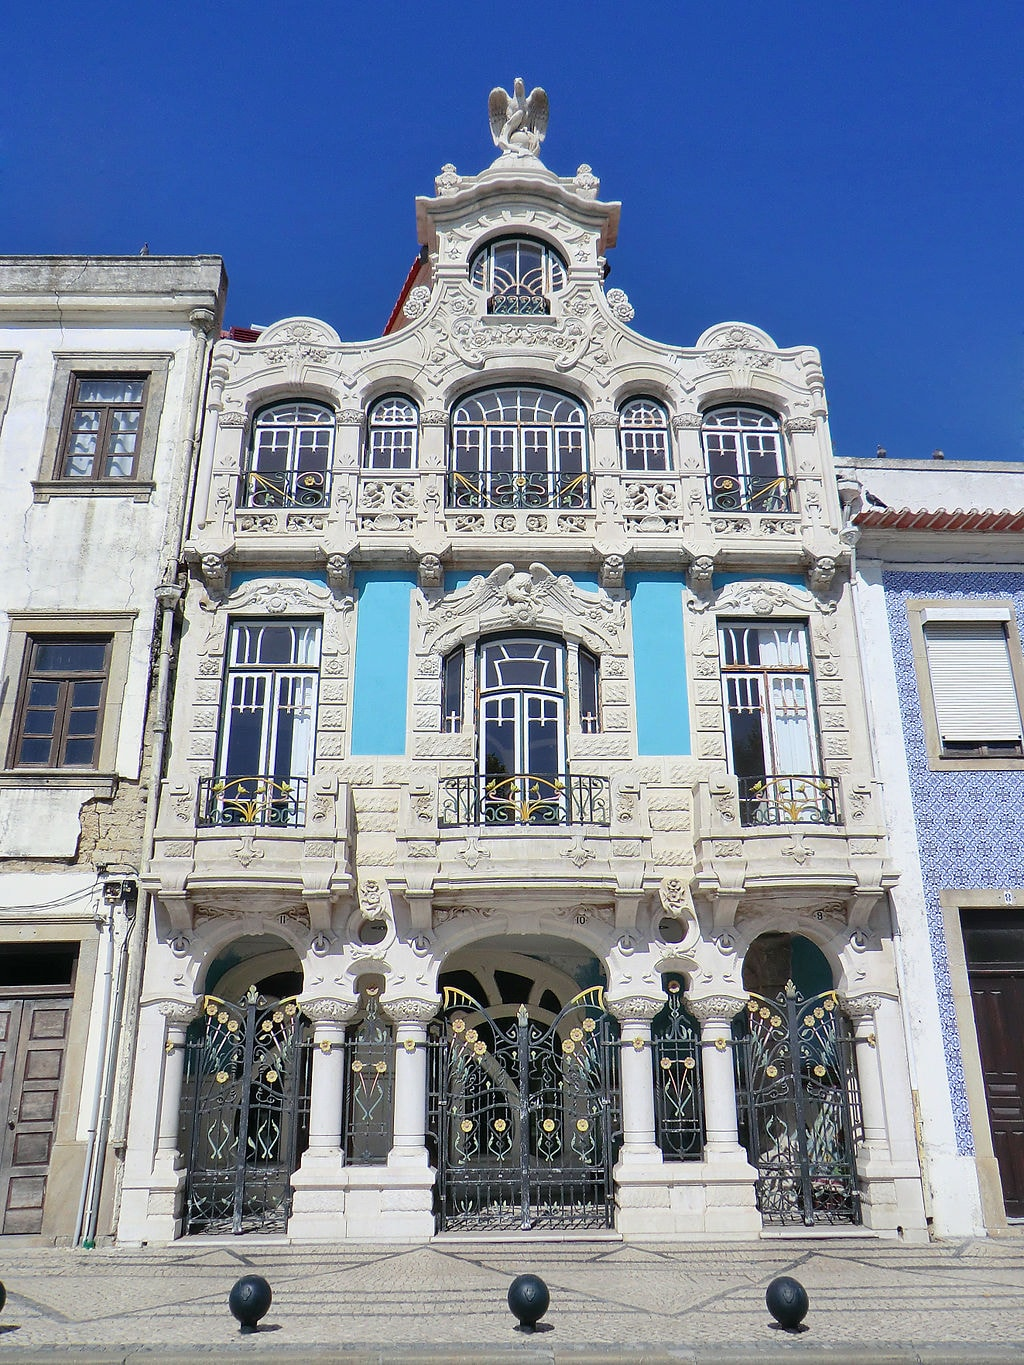 https://commons.wikimedia.org/wiki/File:Casa_do_Major_Pessoa_003.jpg